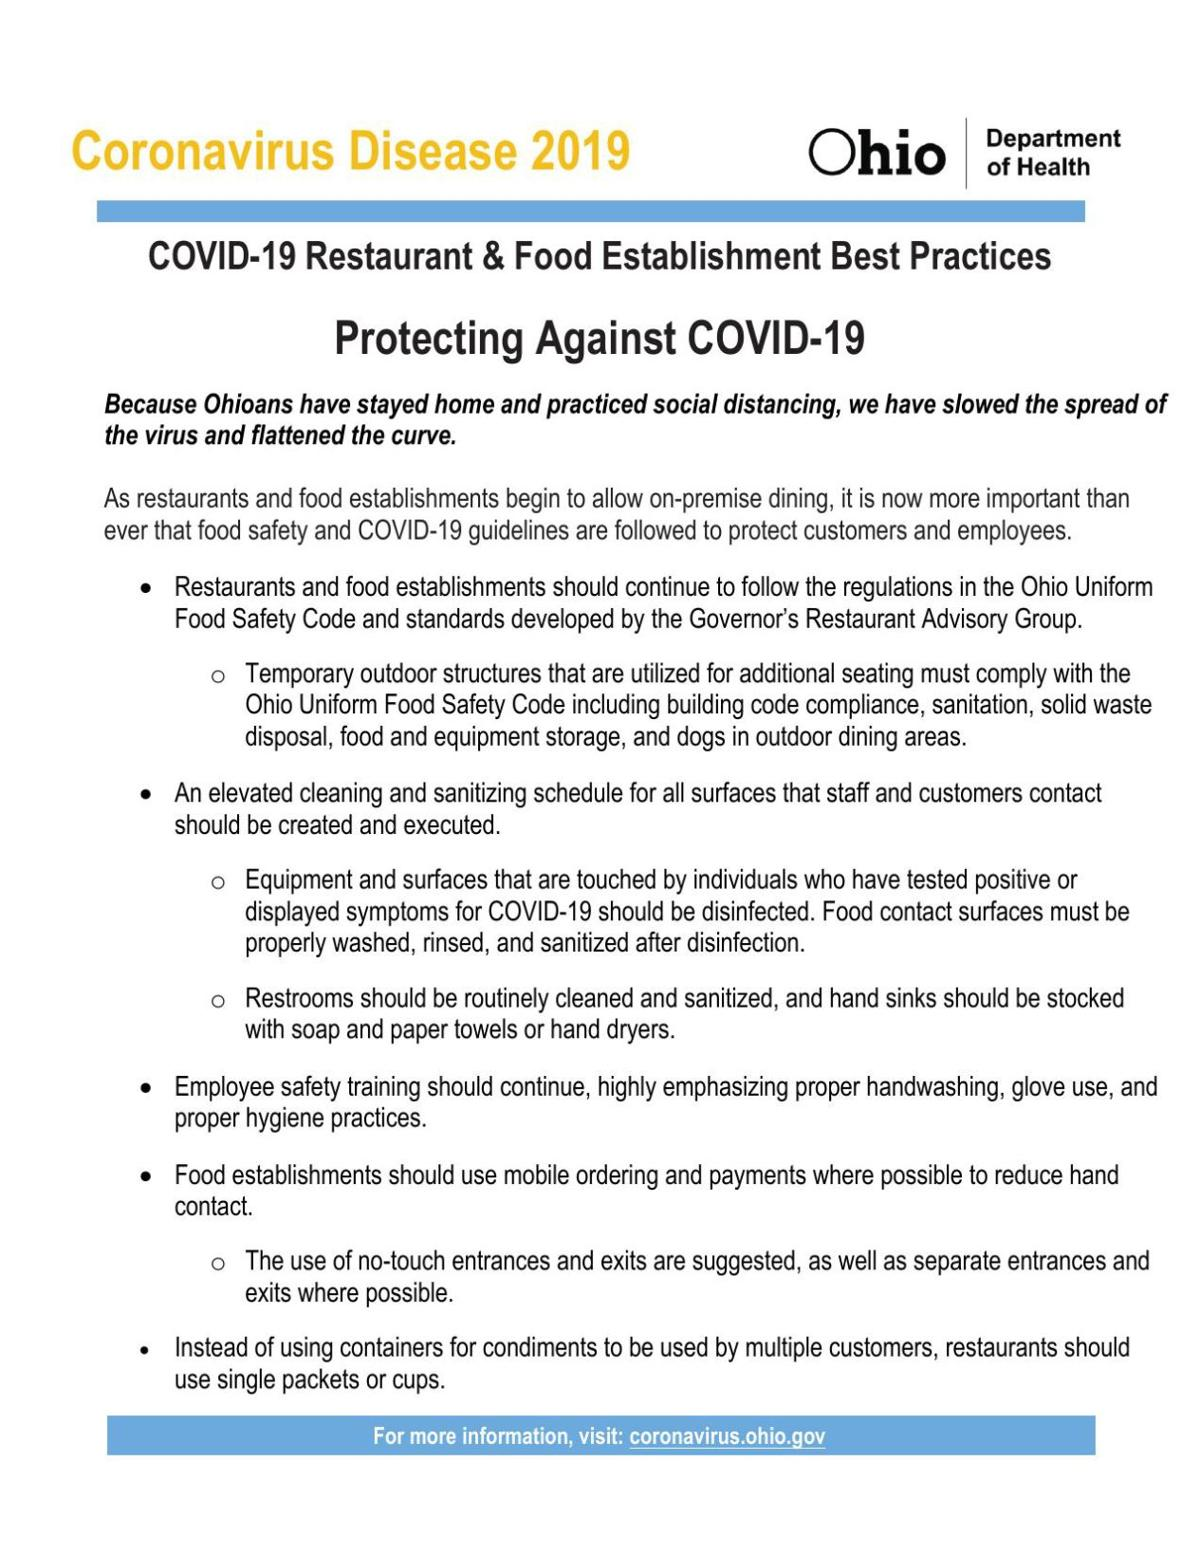 Restaurant-food service guidelines